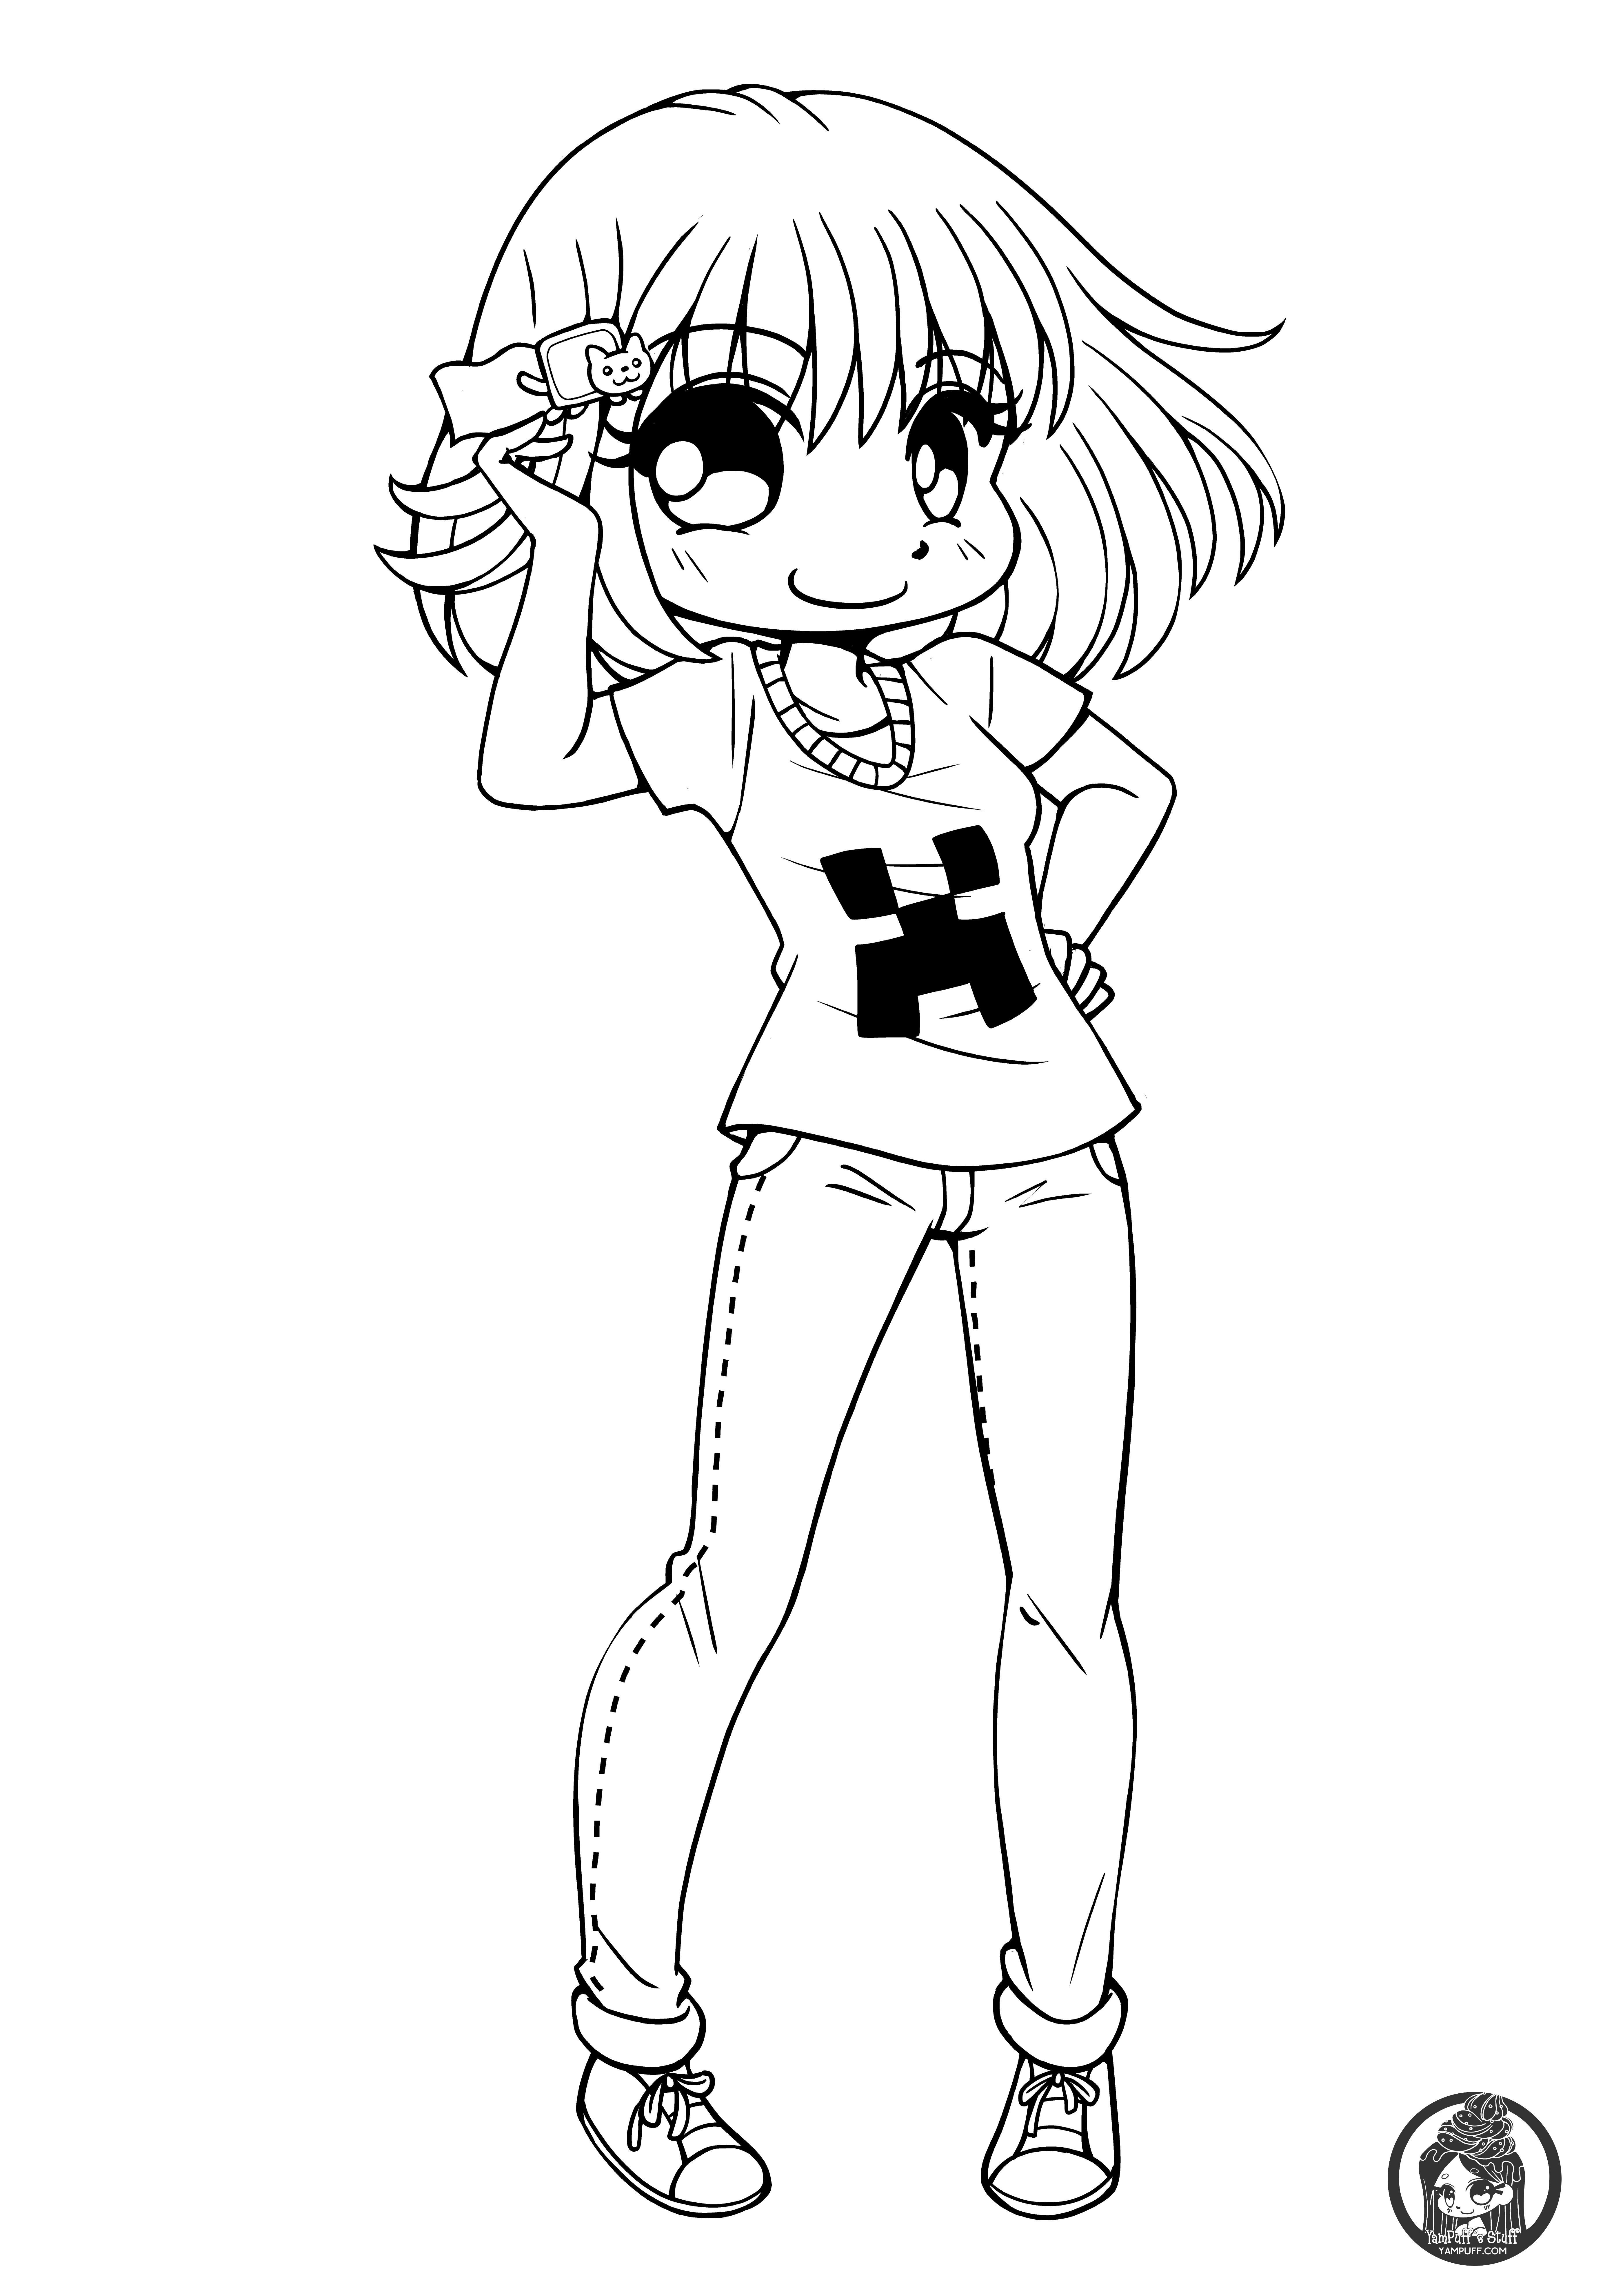 25 Of the Best Ideas for Cute Anime Chibi Girl Coloring Pages ...